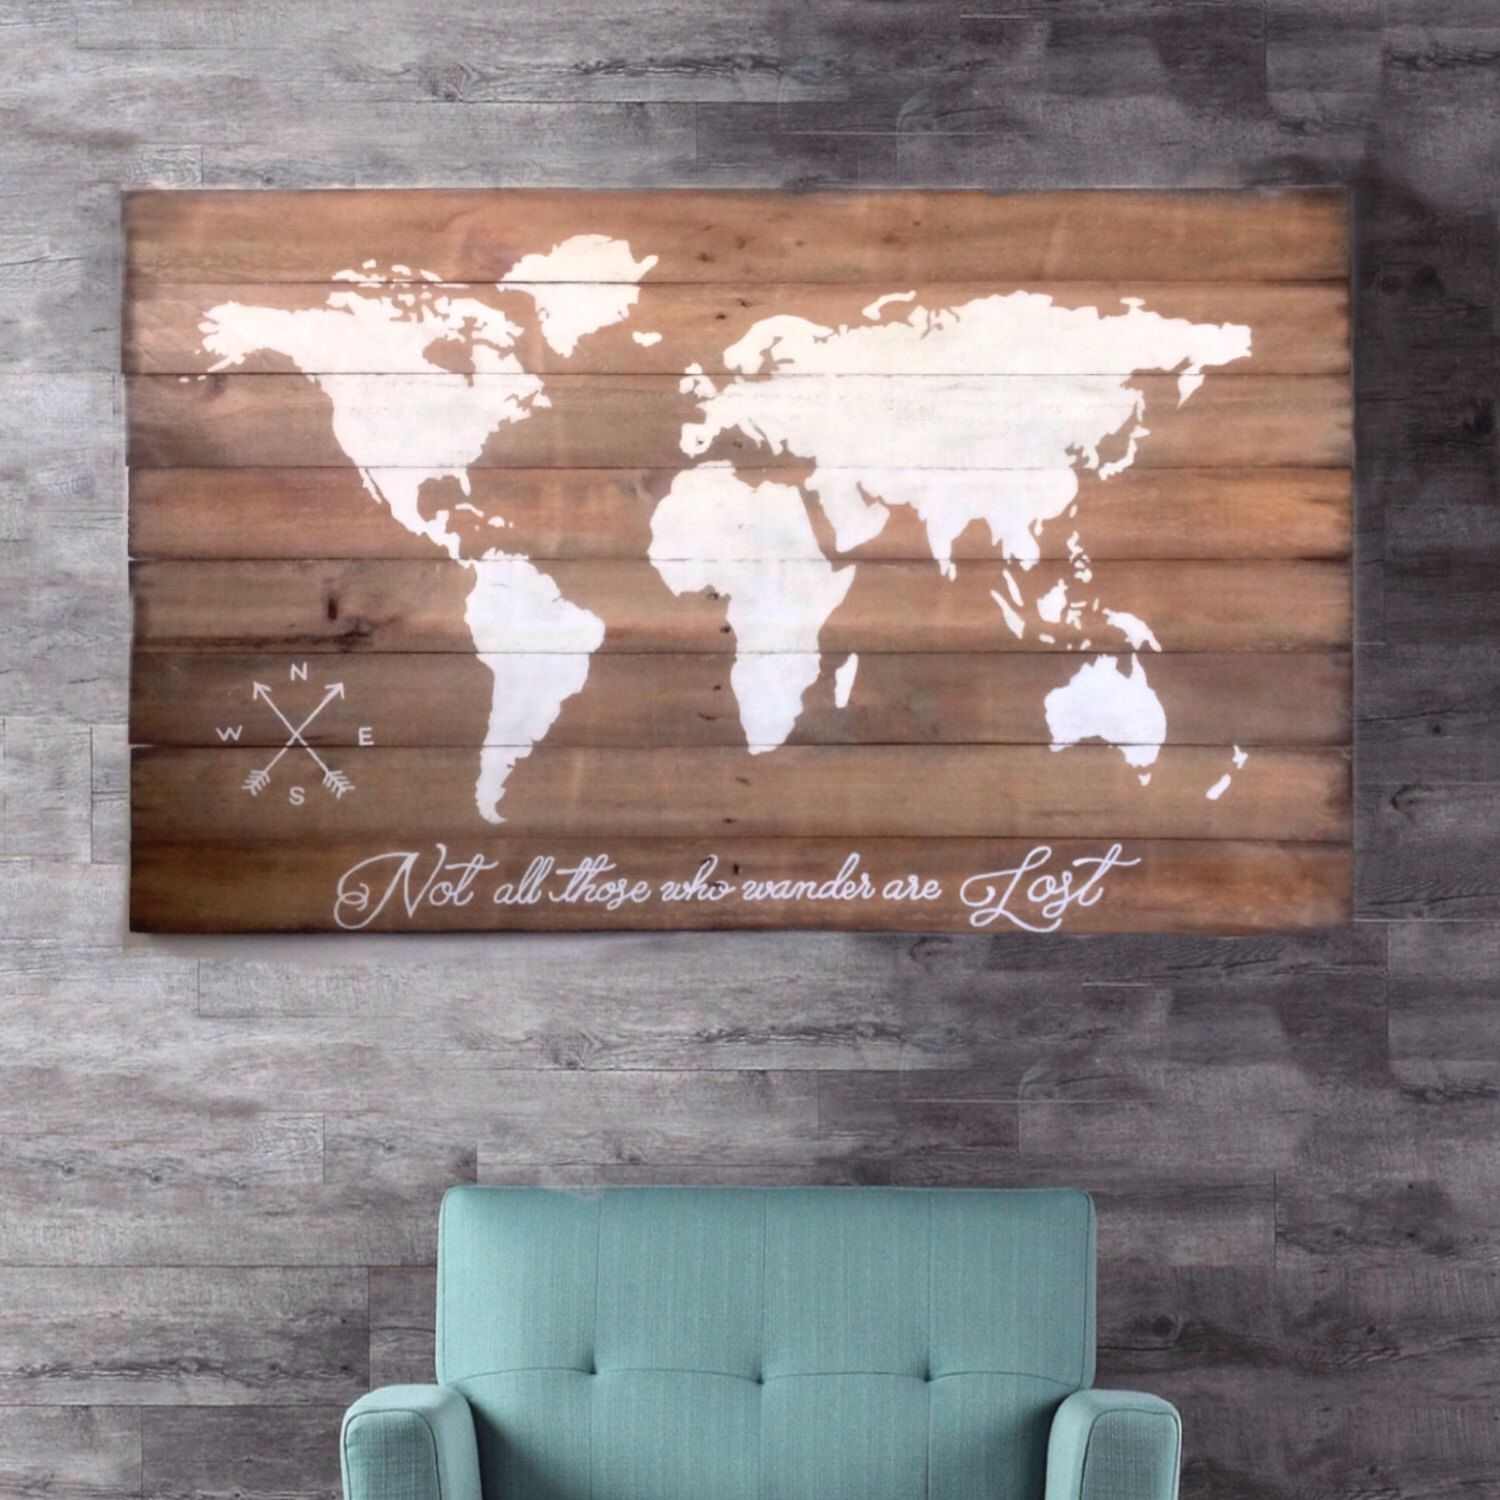 Large wood map 24x36 httpsetsycalisting289831005 wood world map wall art large wall art map reclaimed wood wood wall art wood signs riversidestudio rustic pallet wood furniture gumiabroncs Image collections